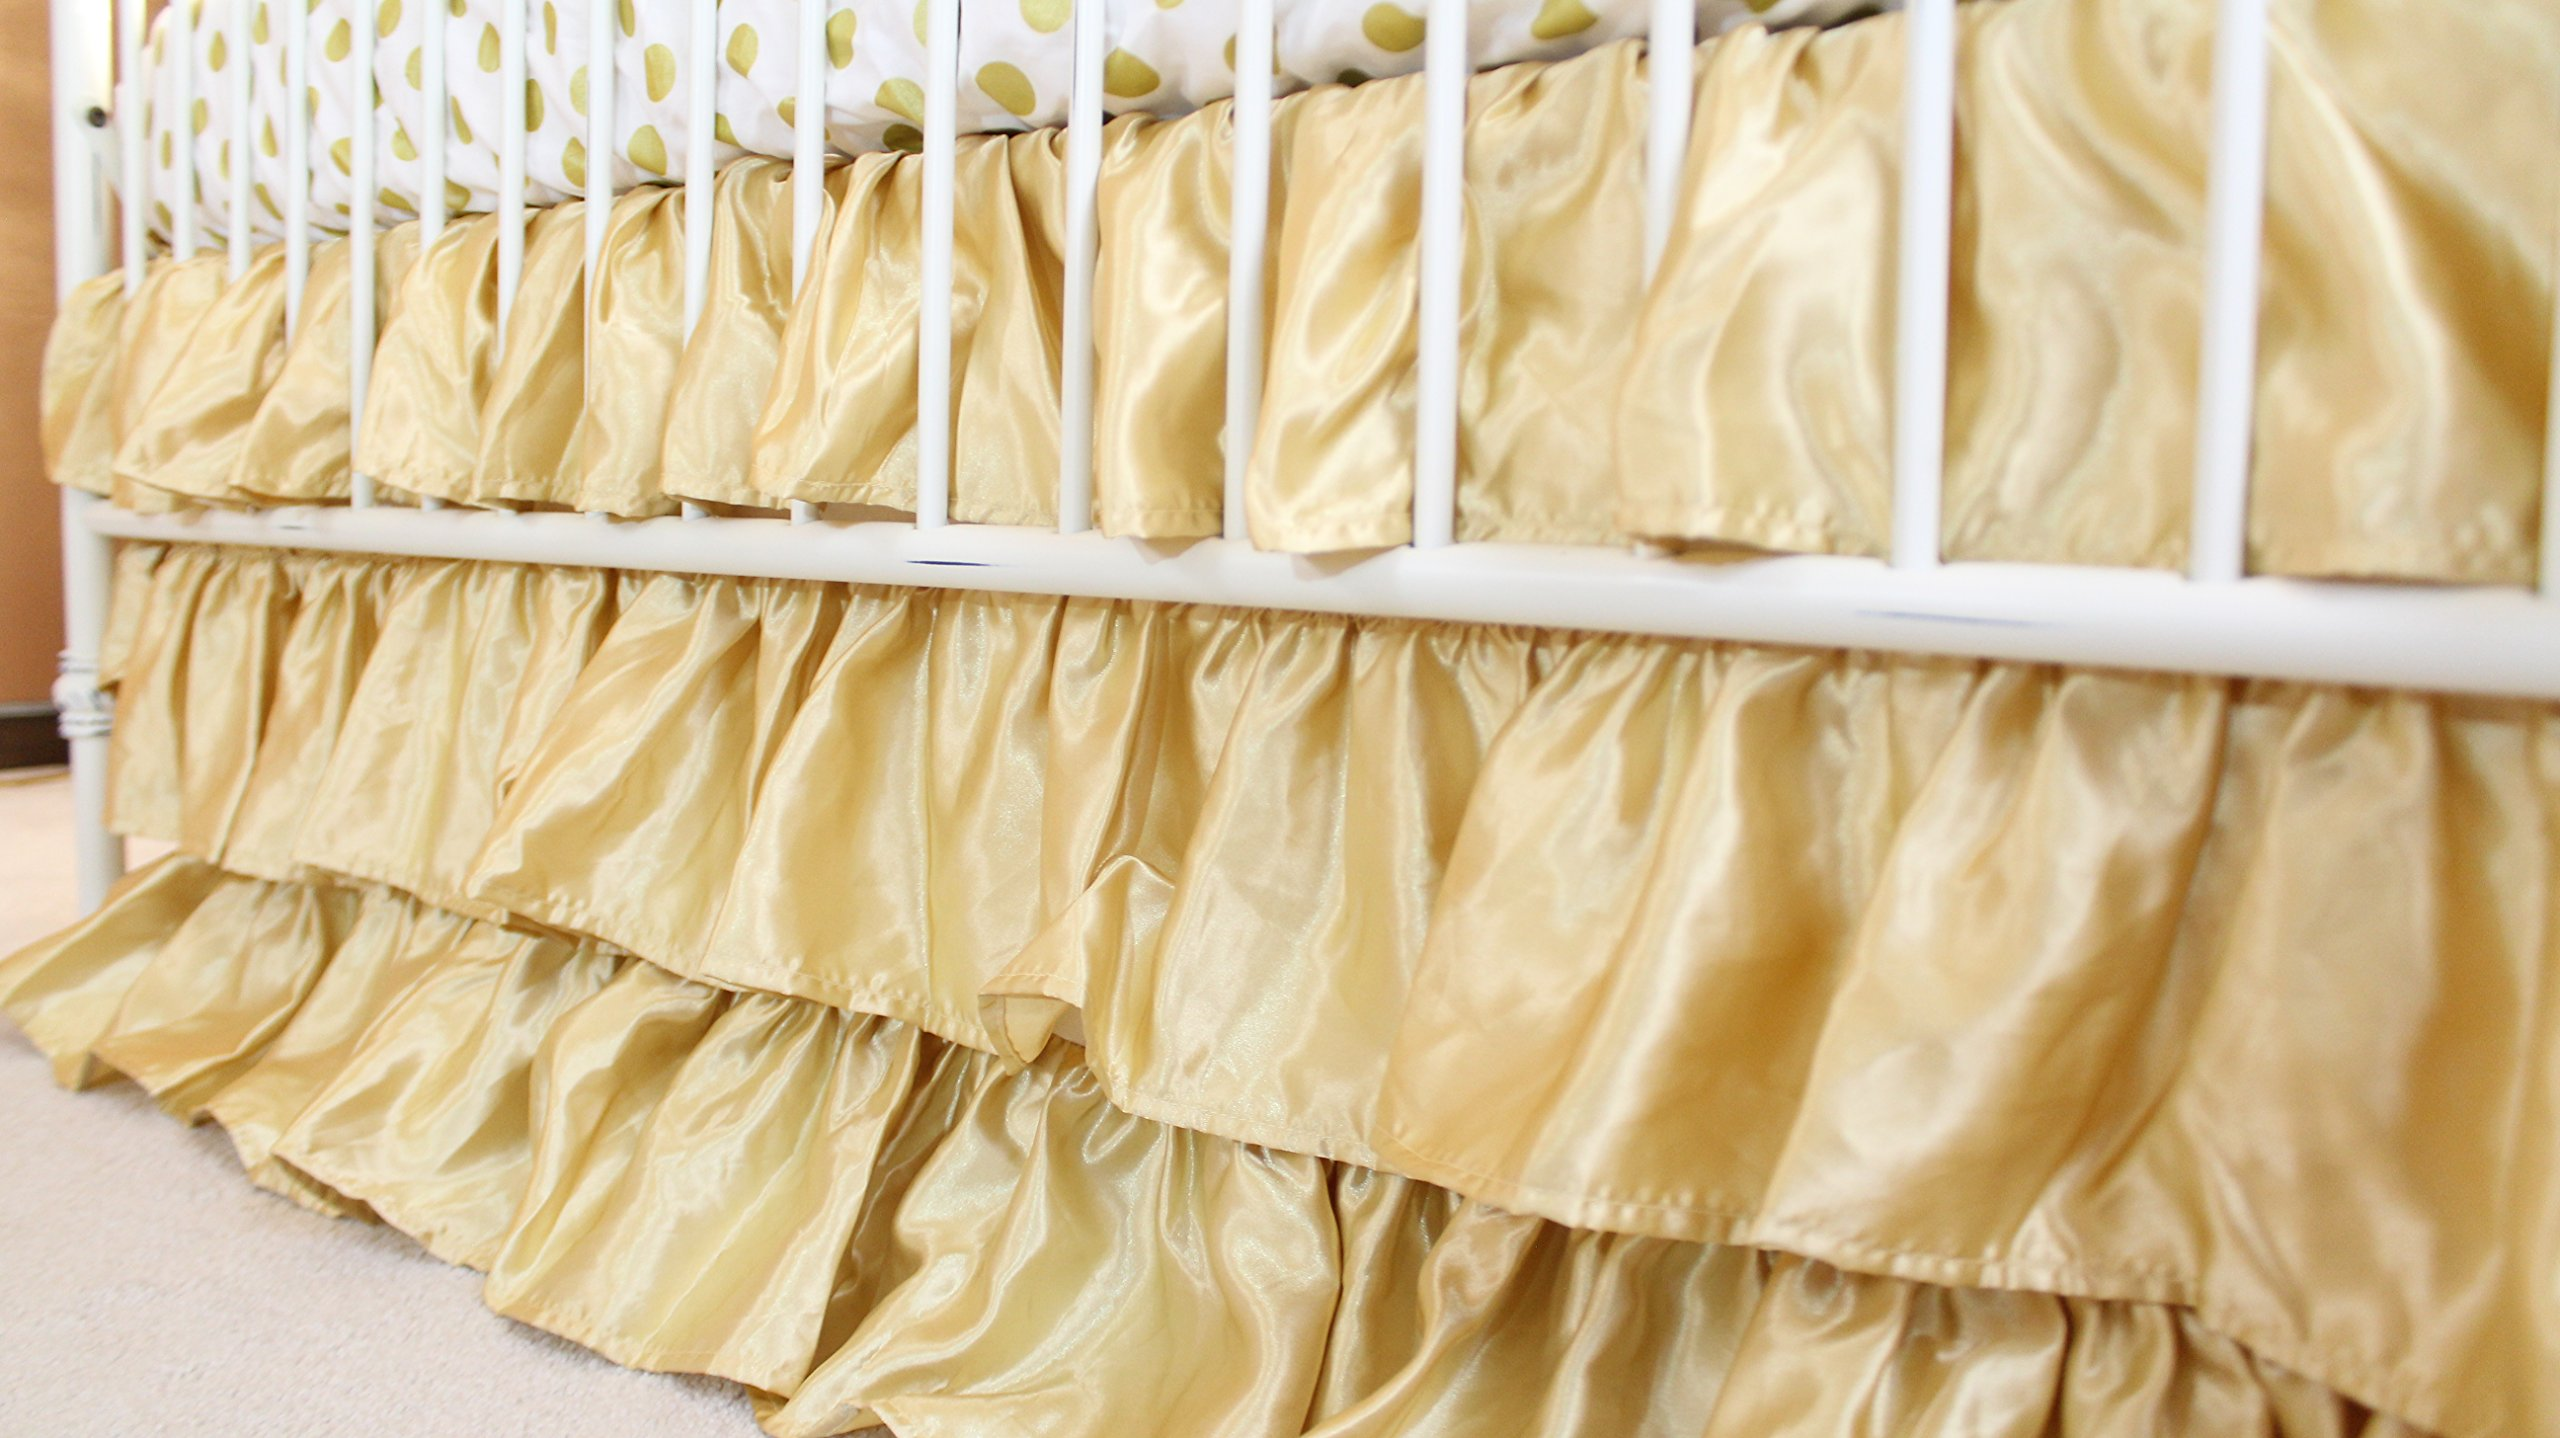 Solid 3 Tiered Ruffled Satin Crib Skirt - Fits Standard Cribs (Gold) by Bold Bedding